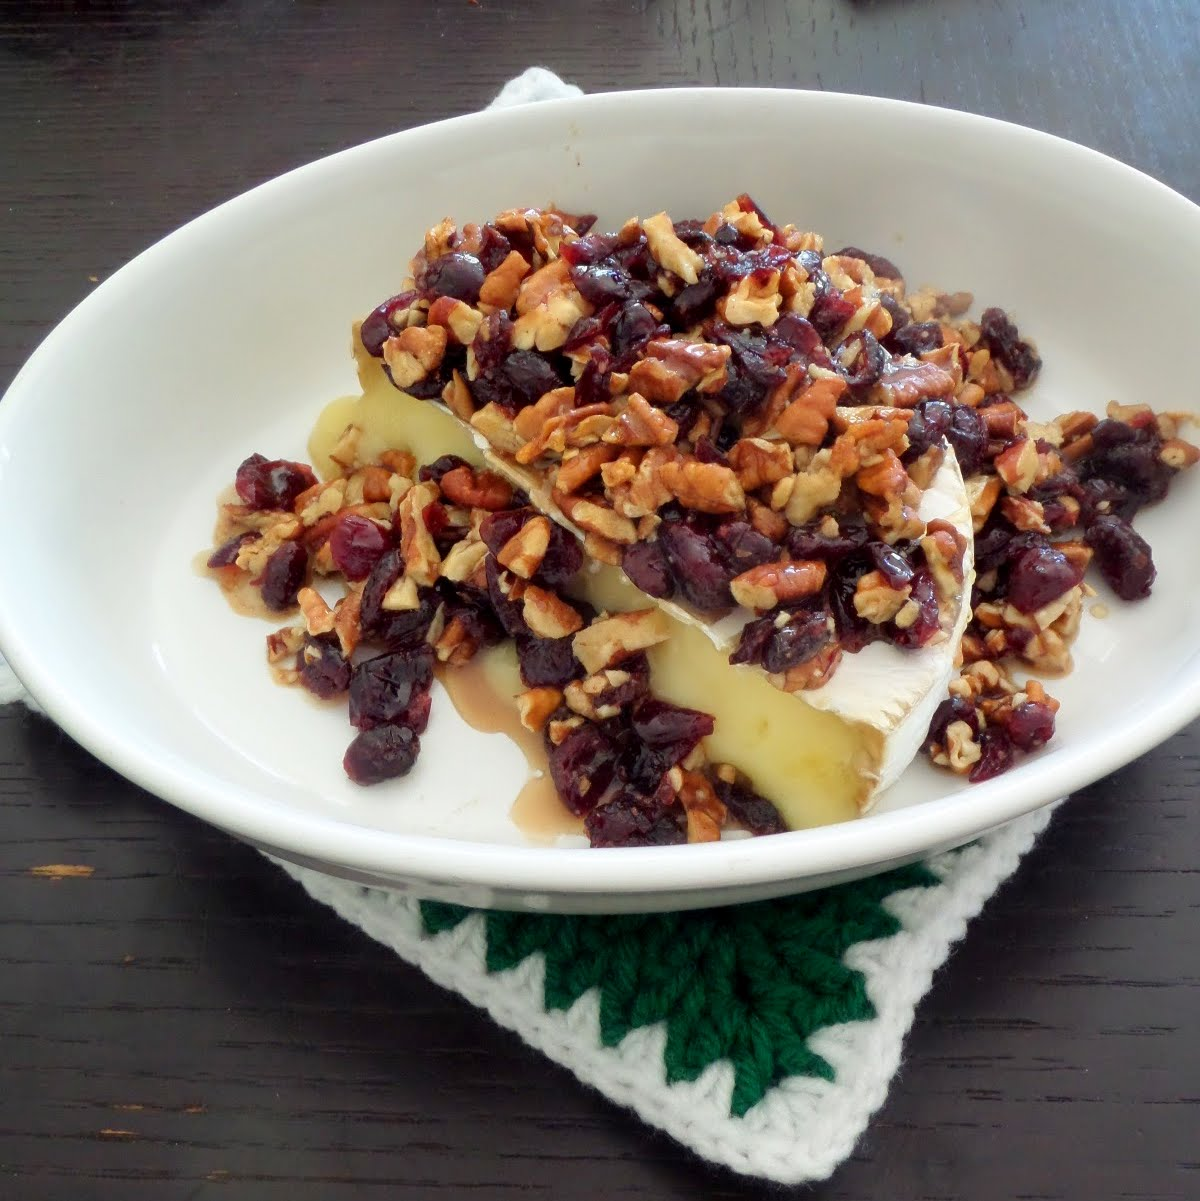 Cranberry Pecan Baked Brie:  A delicious, colorful, and simple holiday appetizer of brie topped with dried cranberries, pecans, and honey.